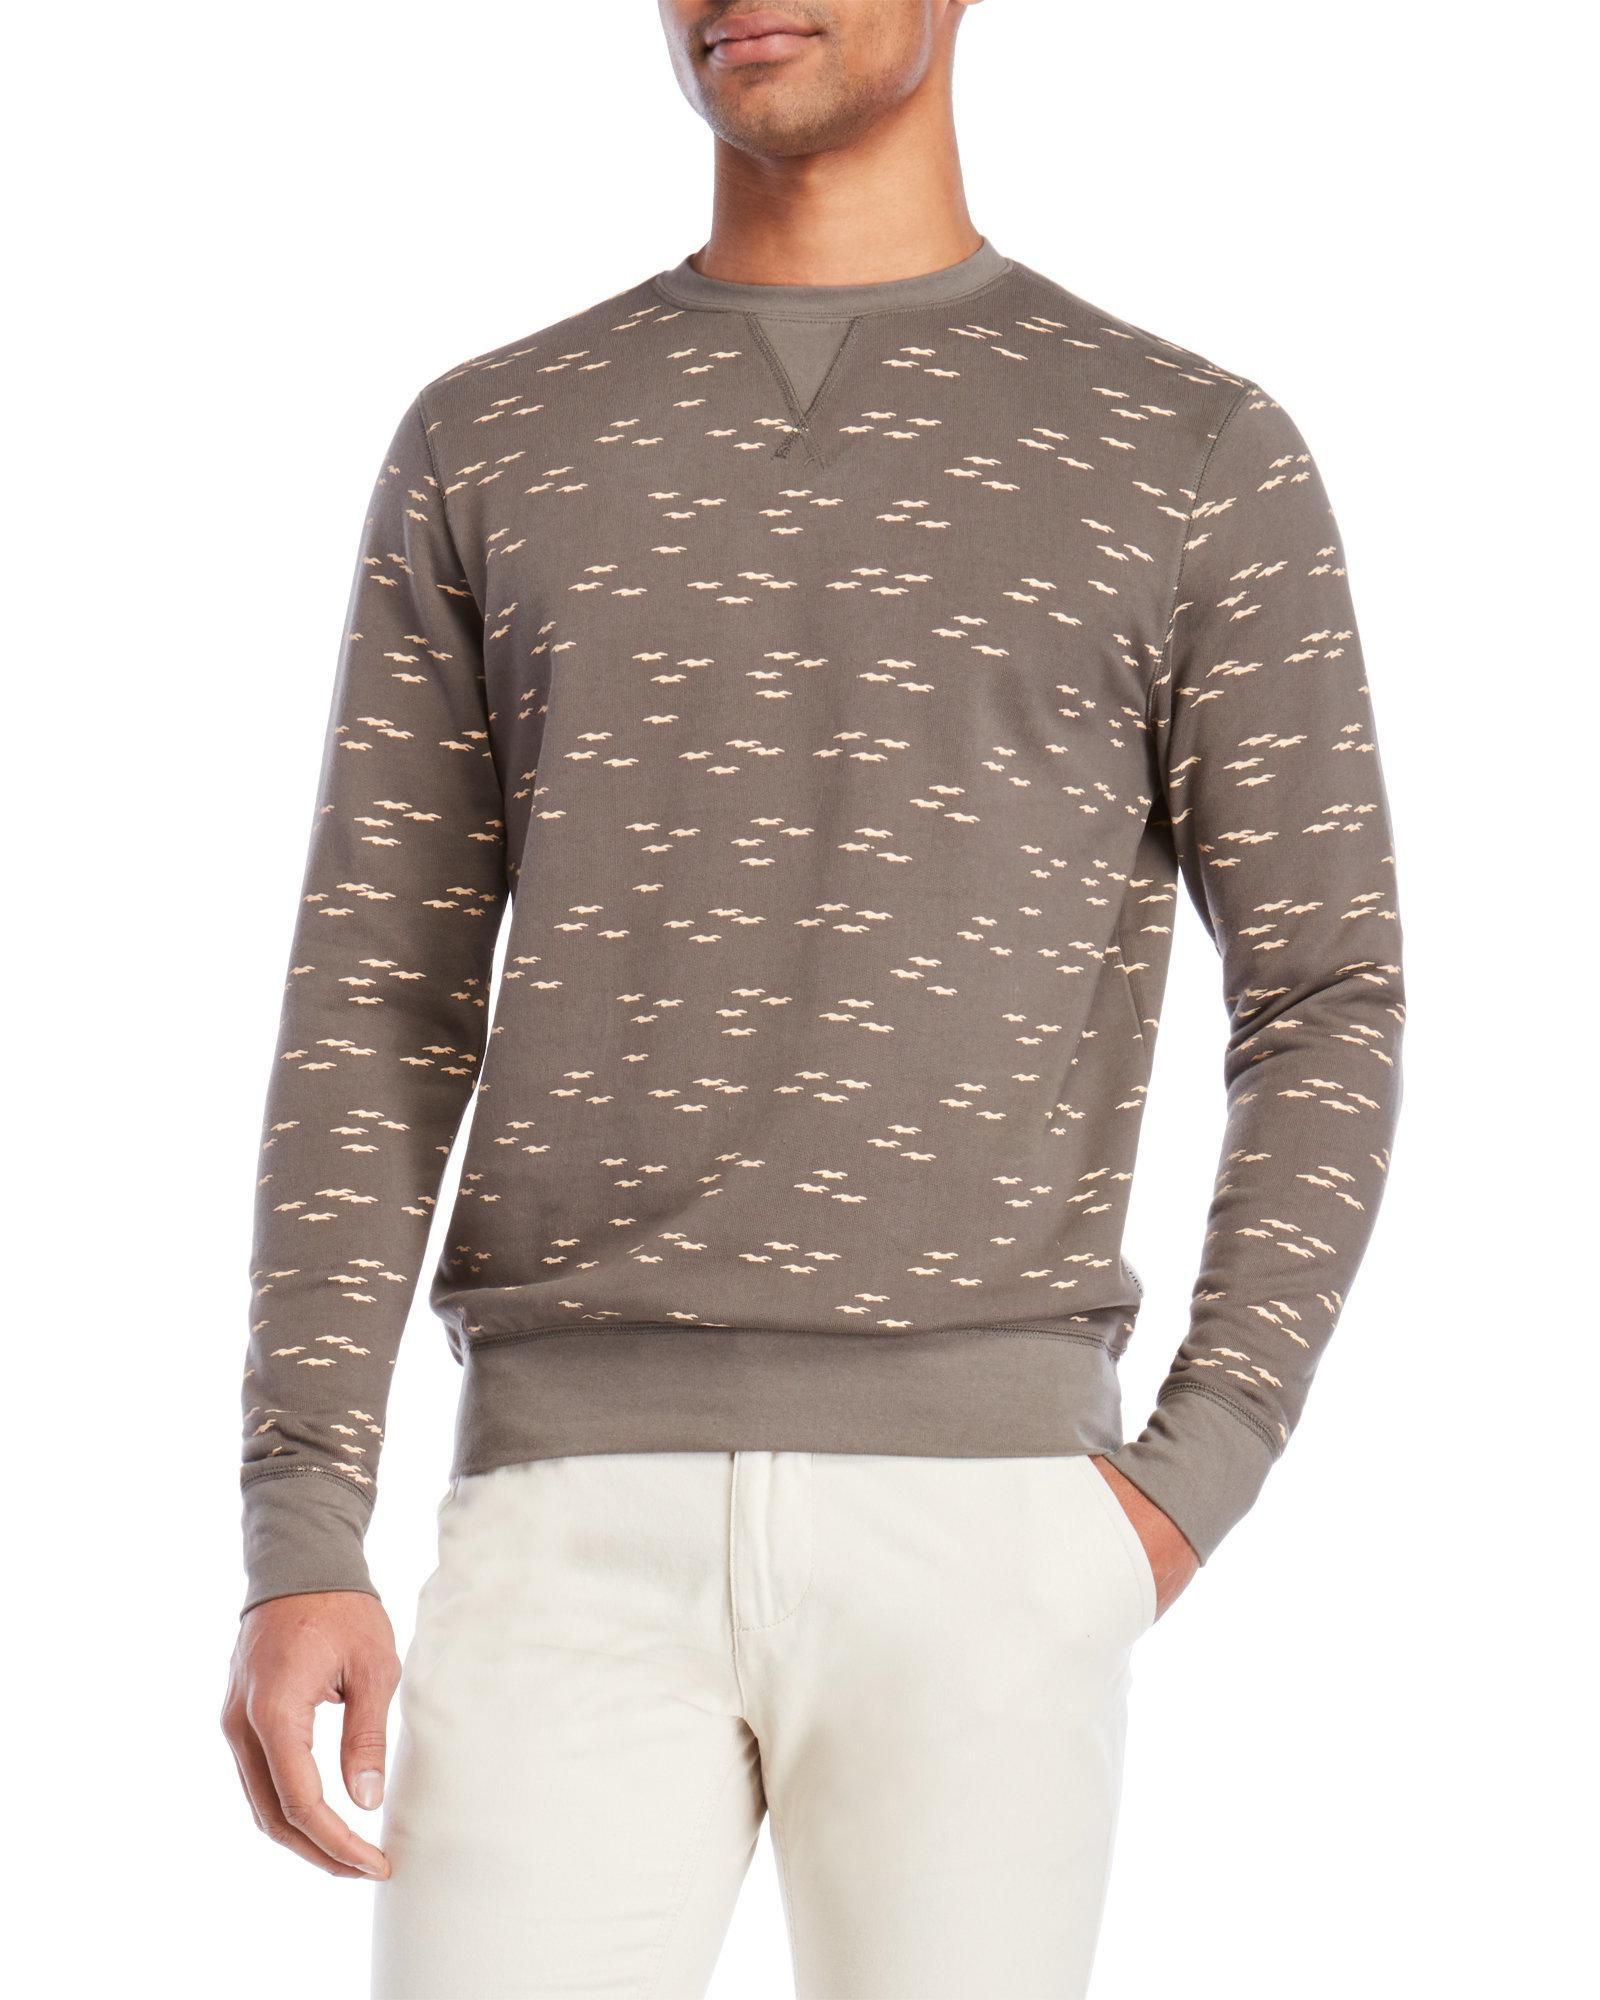 9a3f37b0205f Lyst - Bellfield Seagull Printed Sweatshirt in Gray for Men